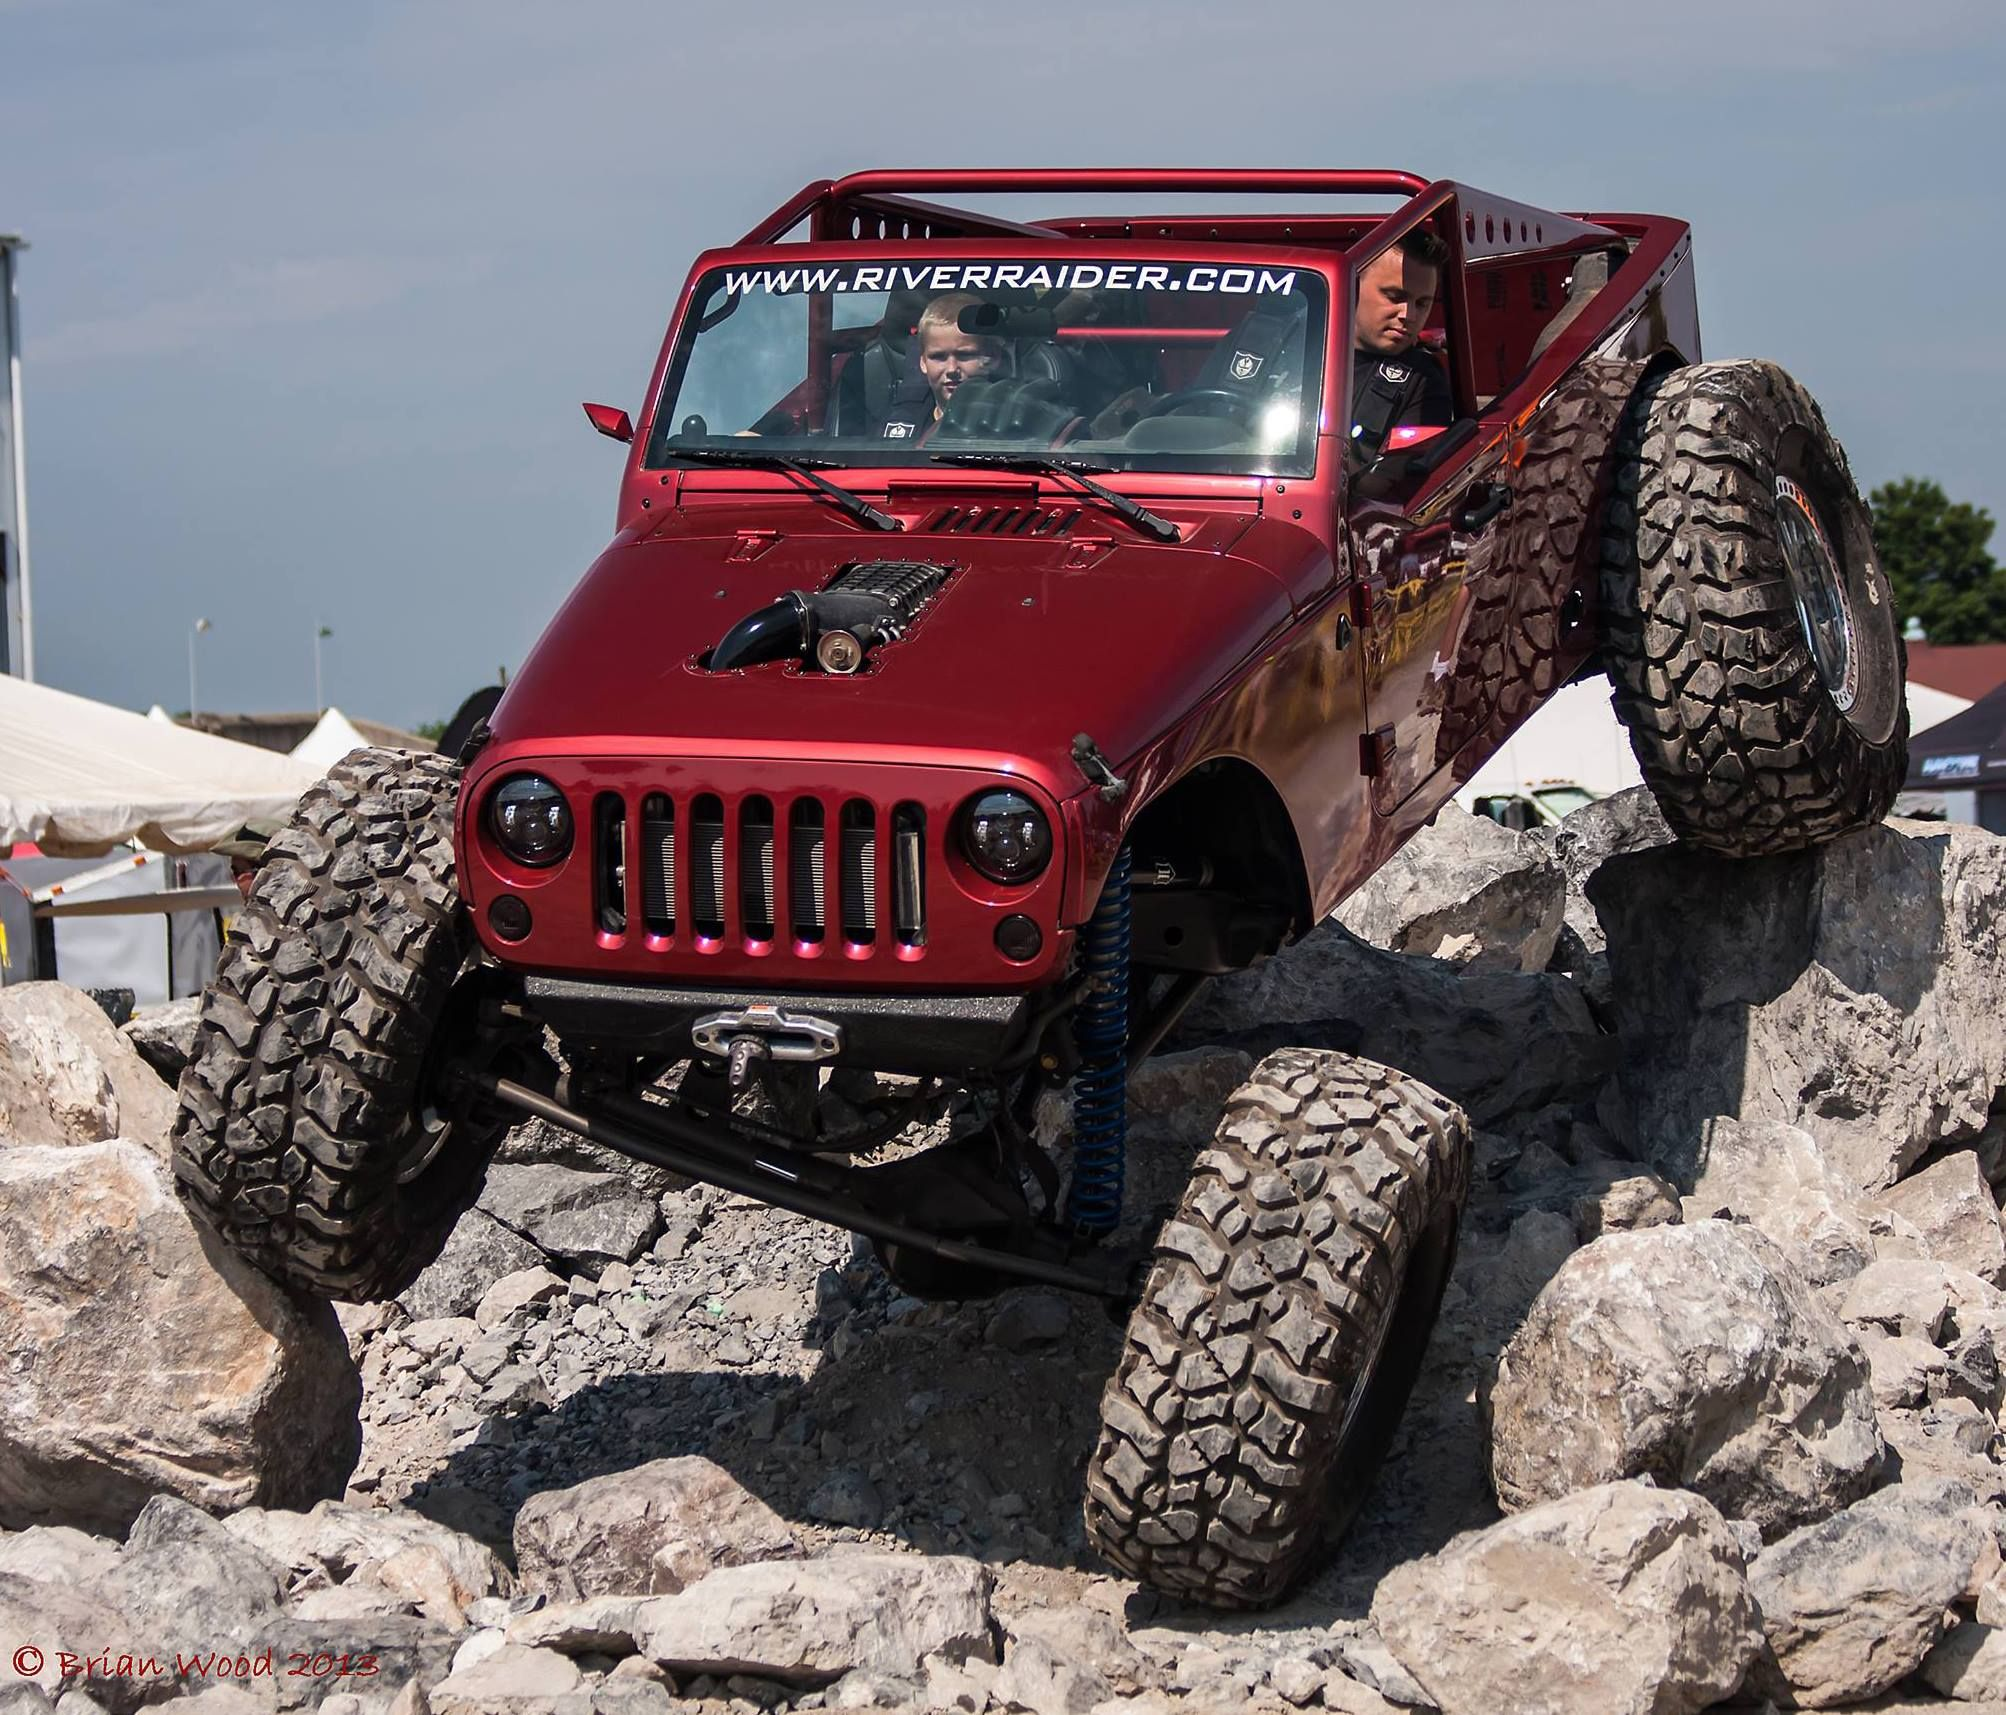 Hauk knows rocks! Project Phoinix by Hauk Designs at the York, PA All Breeds Jeep Show.